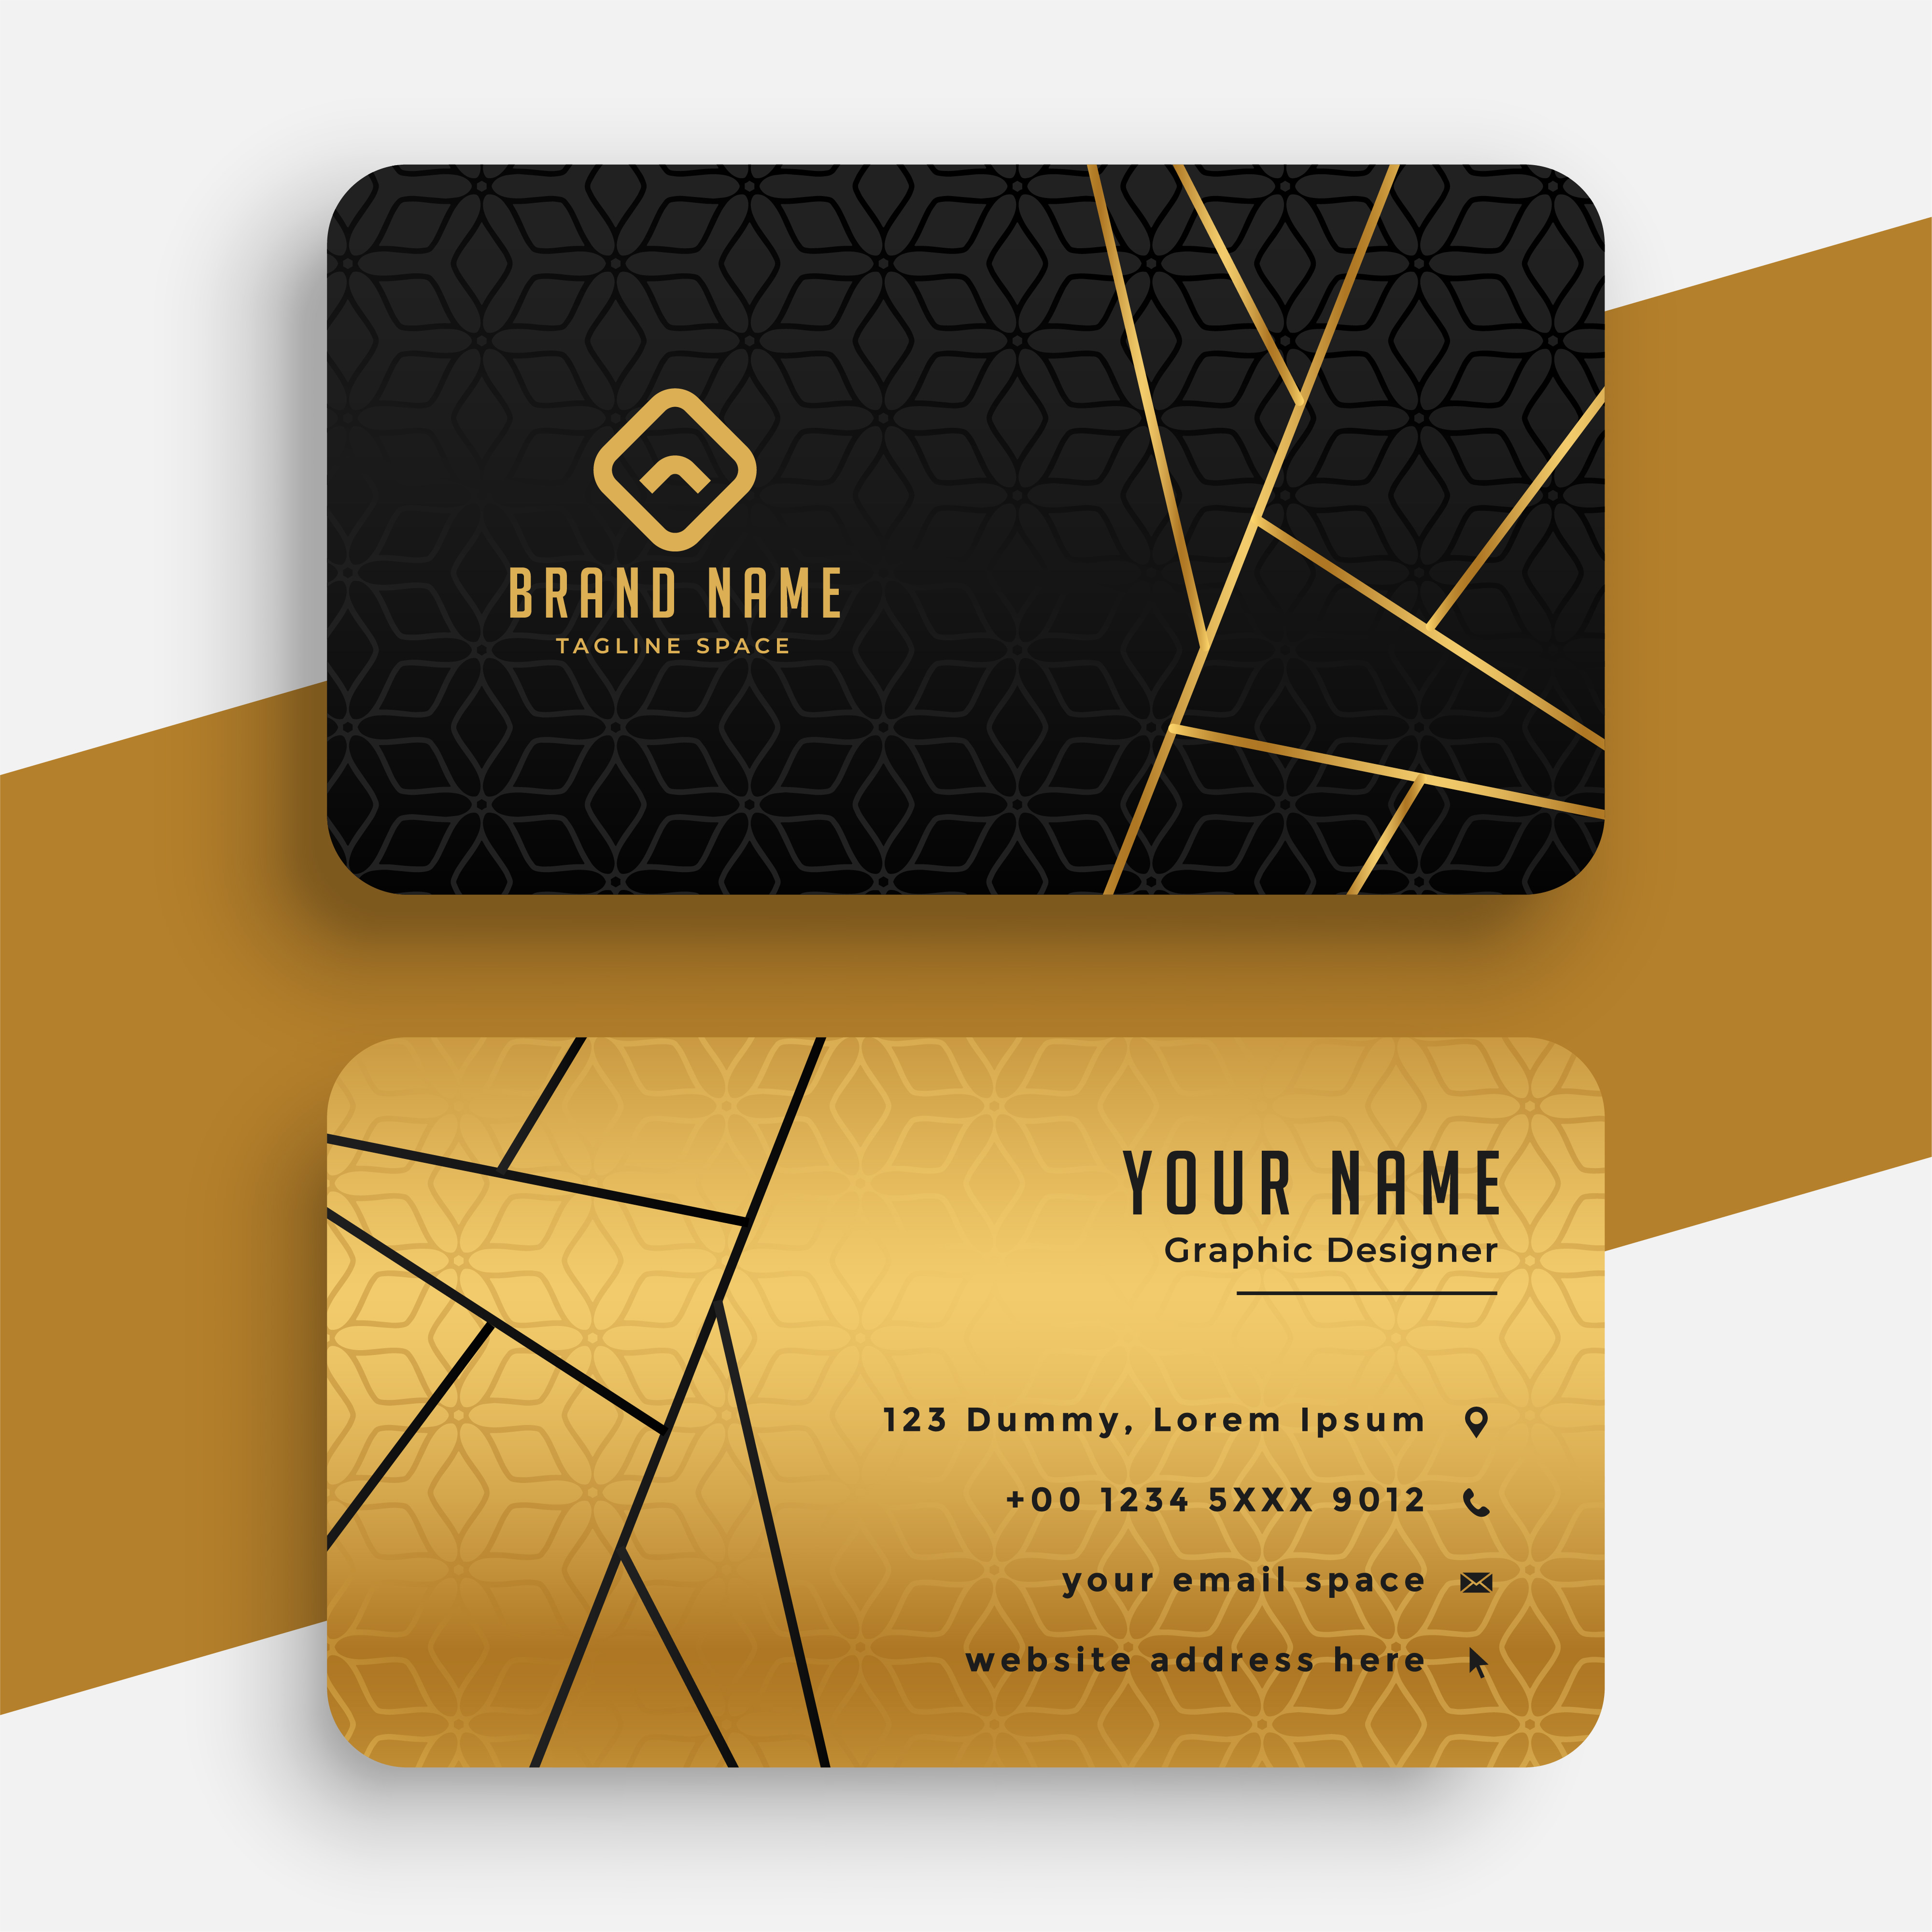 I will design High-Quality Professional Business Card